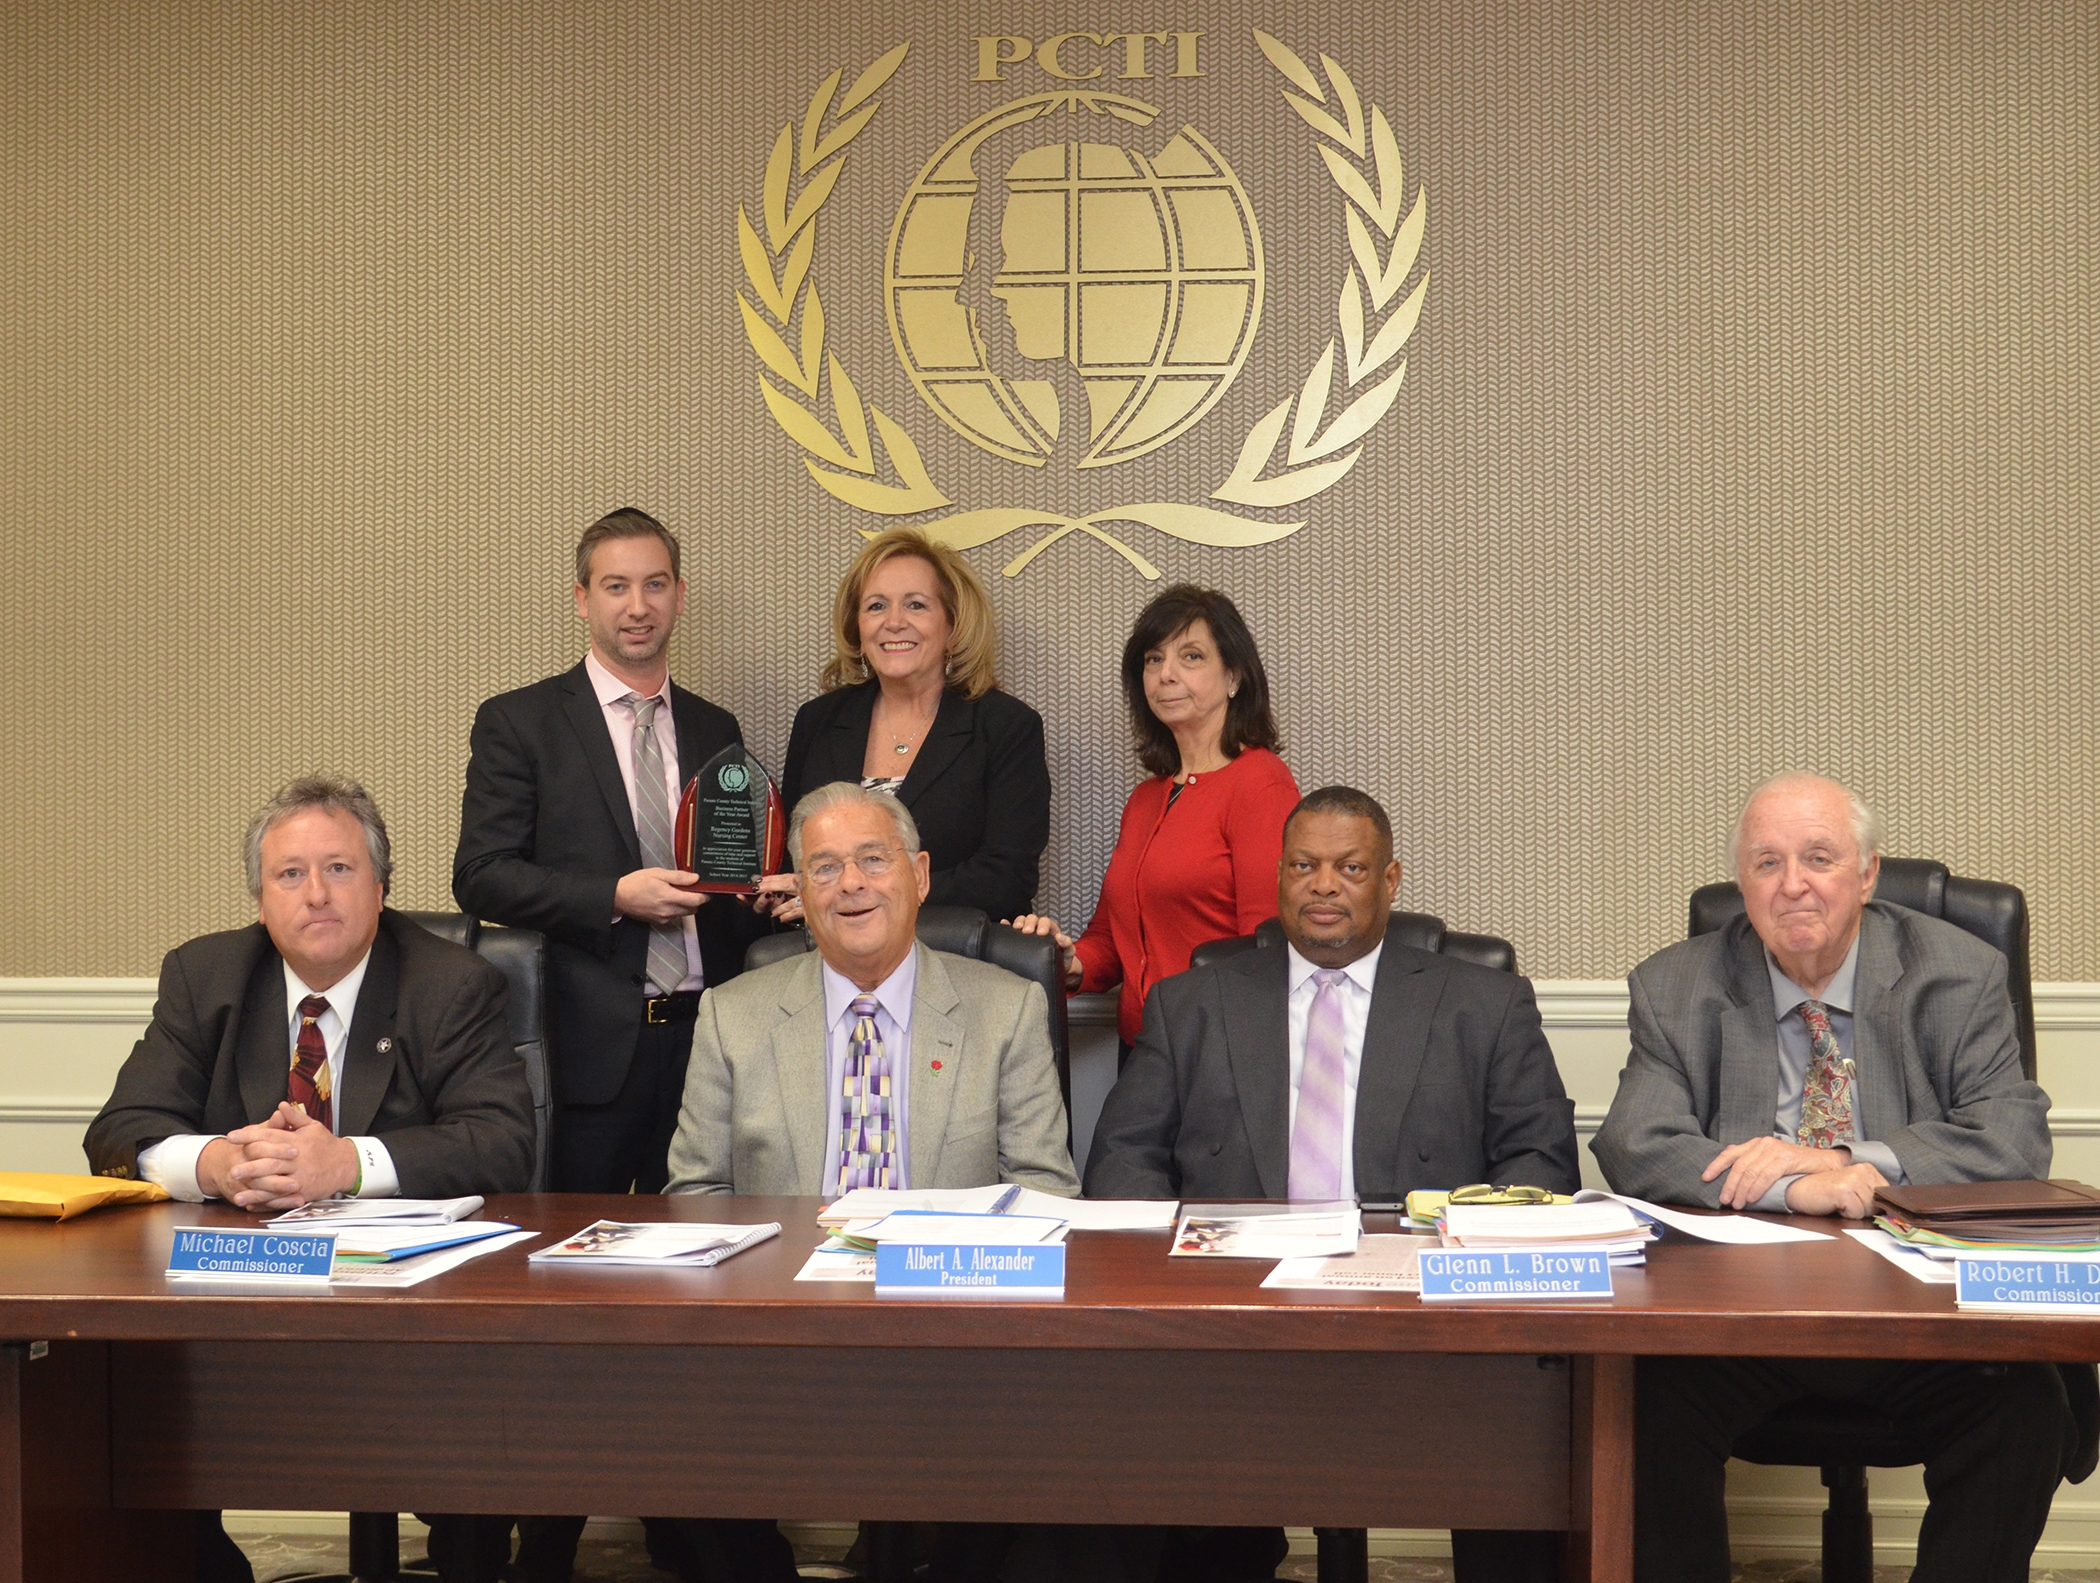 Seated: PCTIC Commissioners And President. Standing Left To Right: Mark  Benedek, Regency